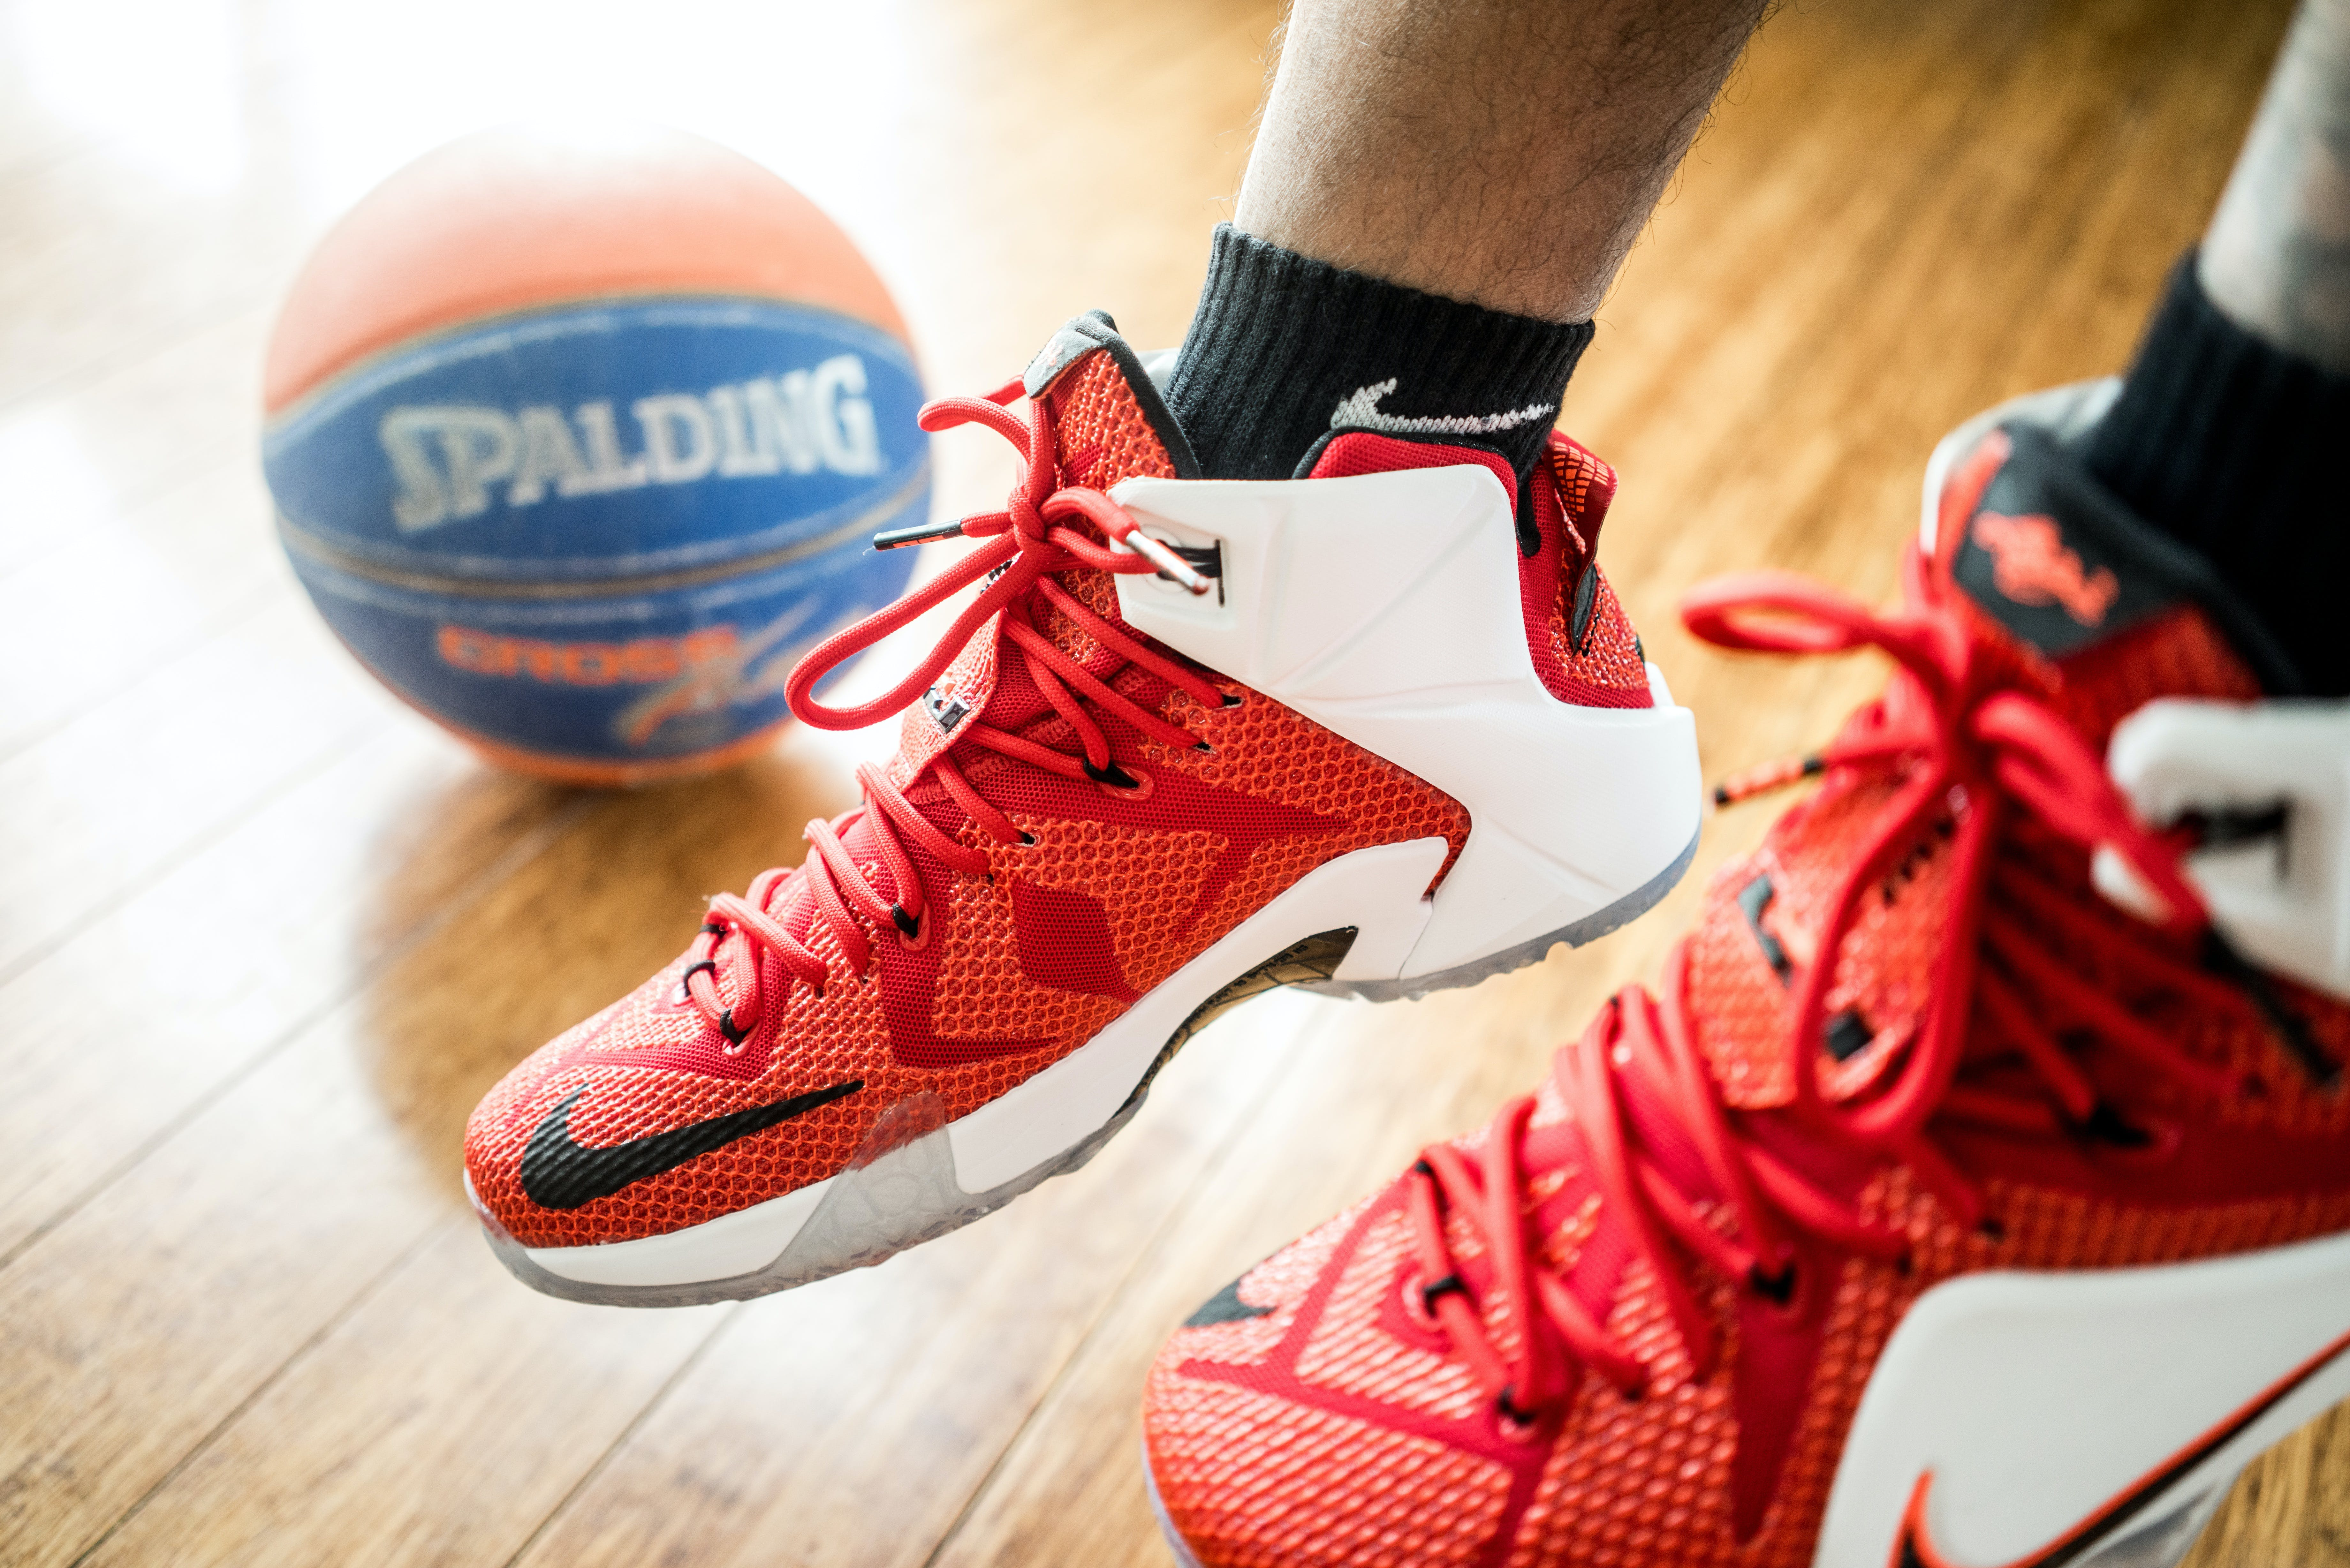 Person Wearing Pair of Red-and-white Nike Lebron 12 Shoes